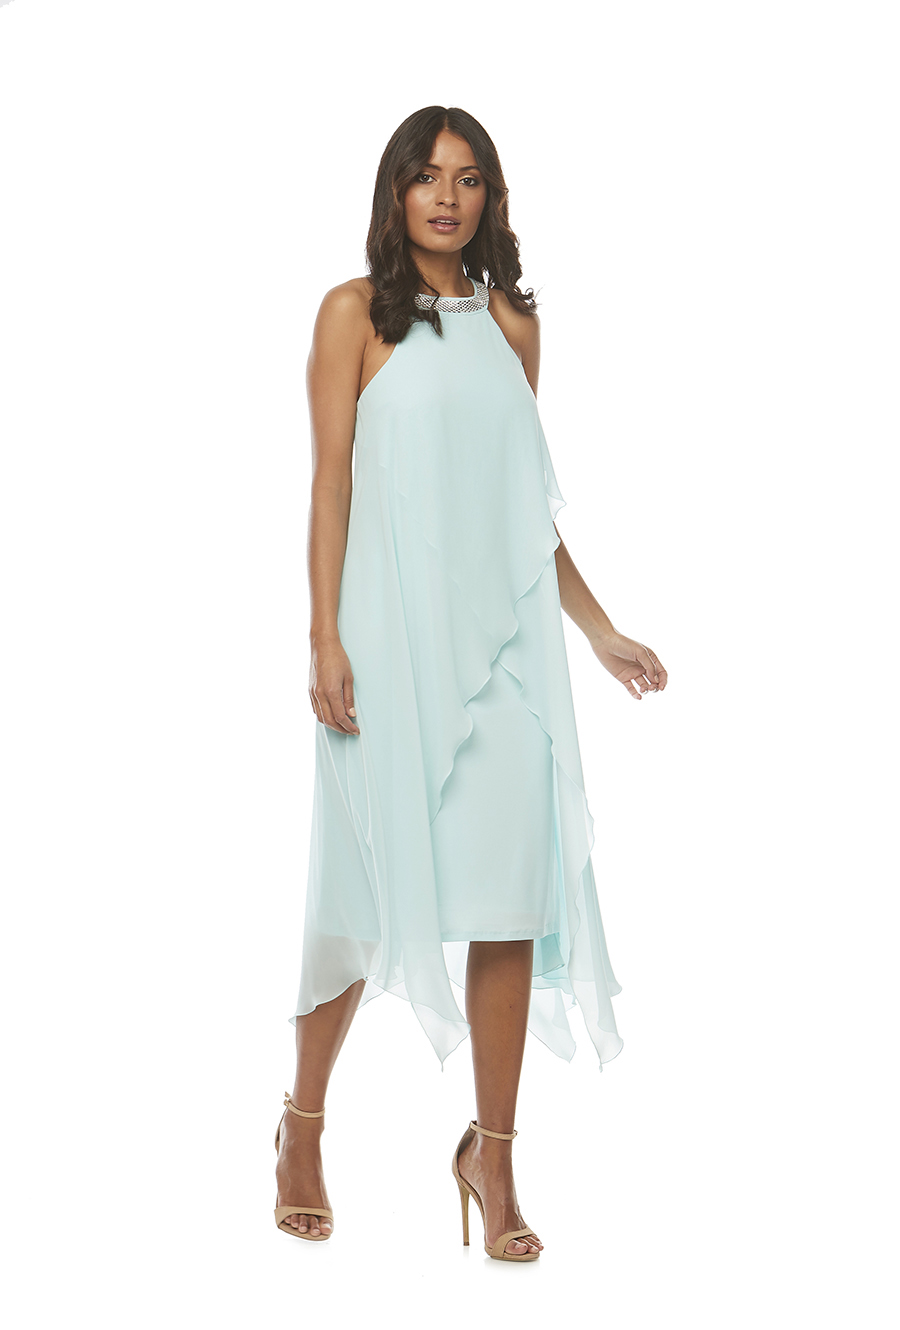 Soft Chiffon layered diamonte trim halter dress